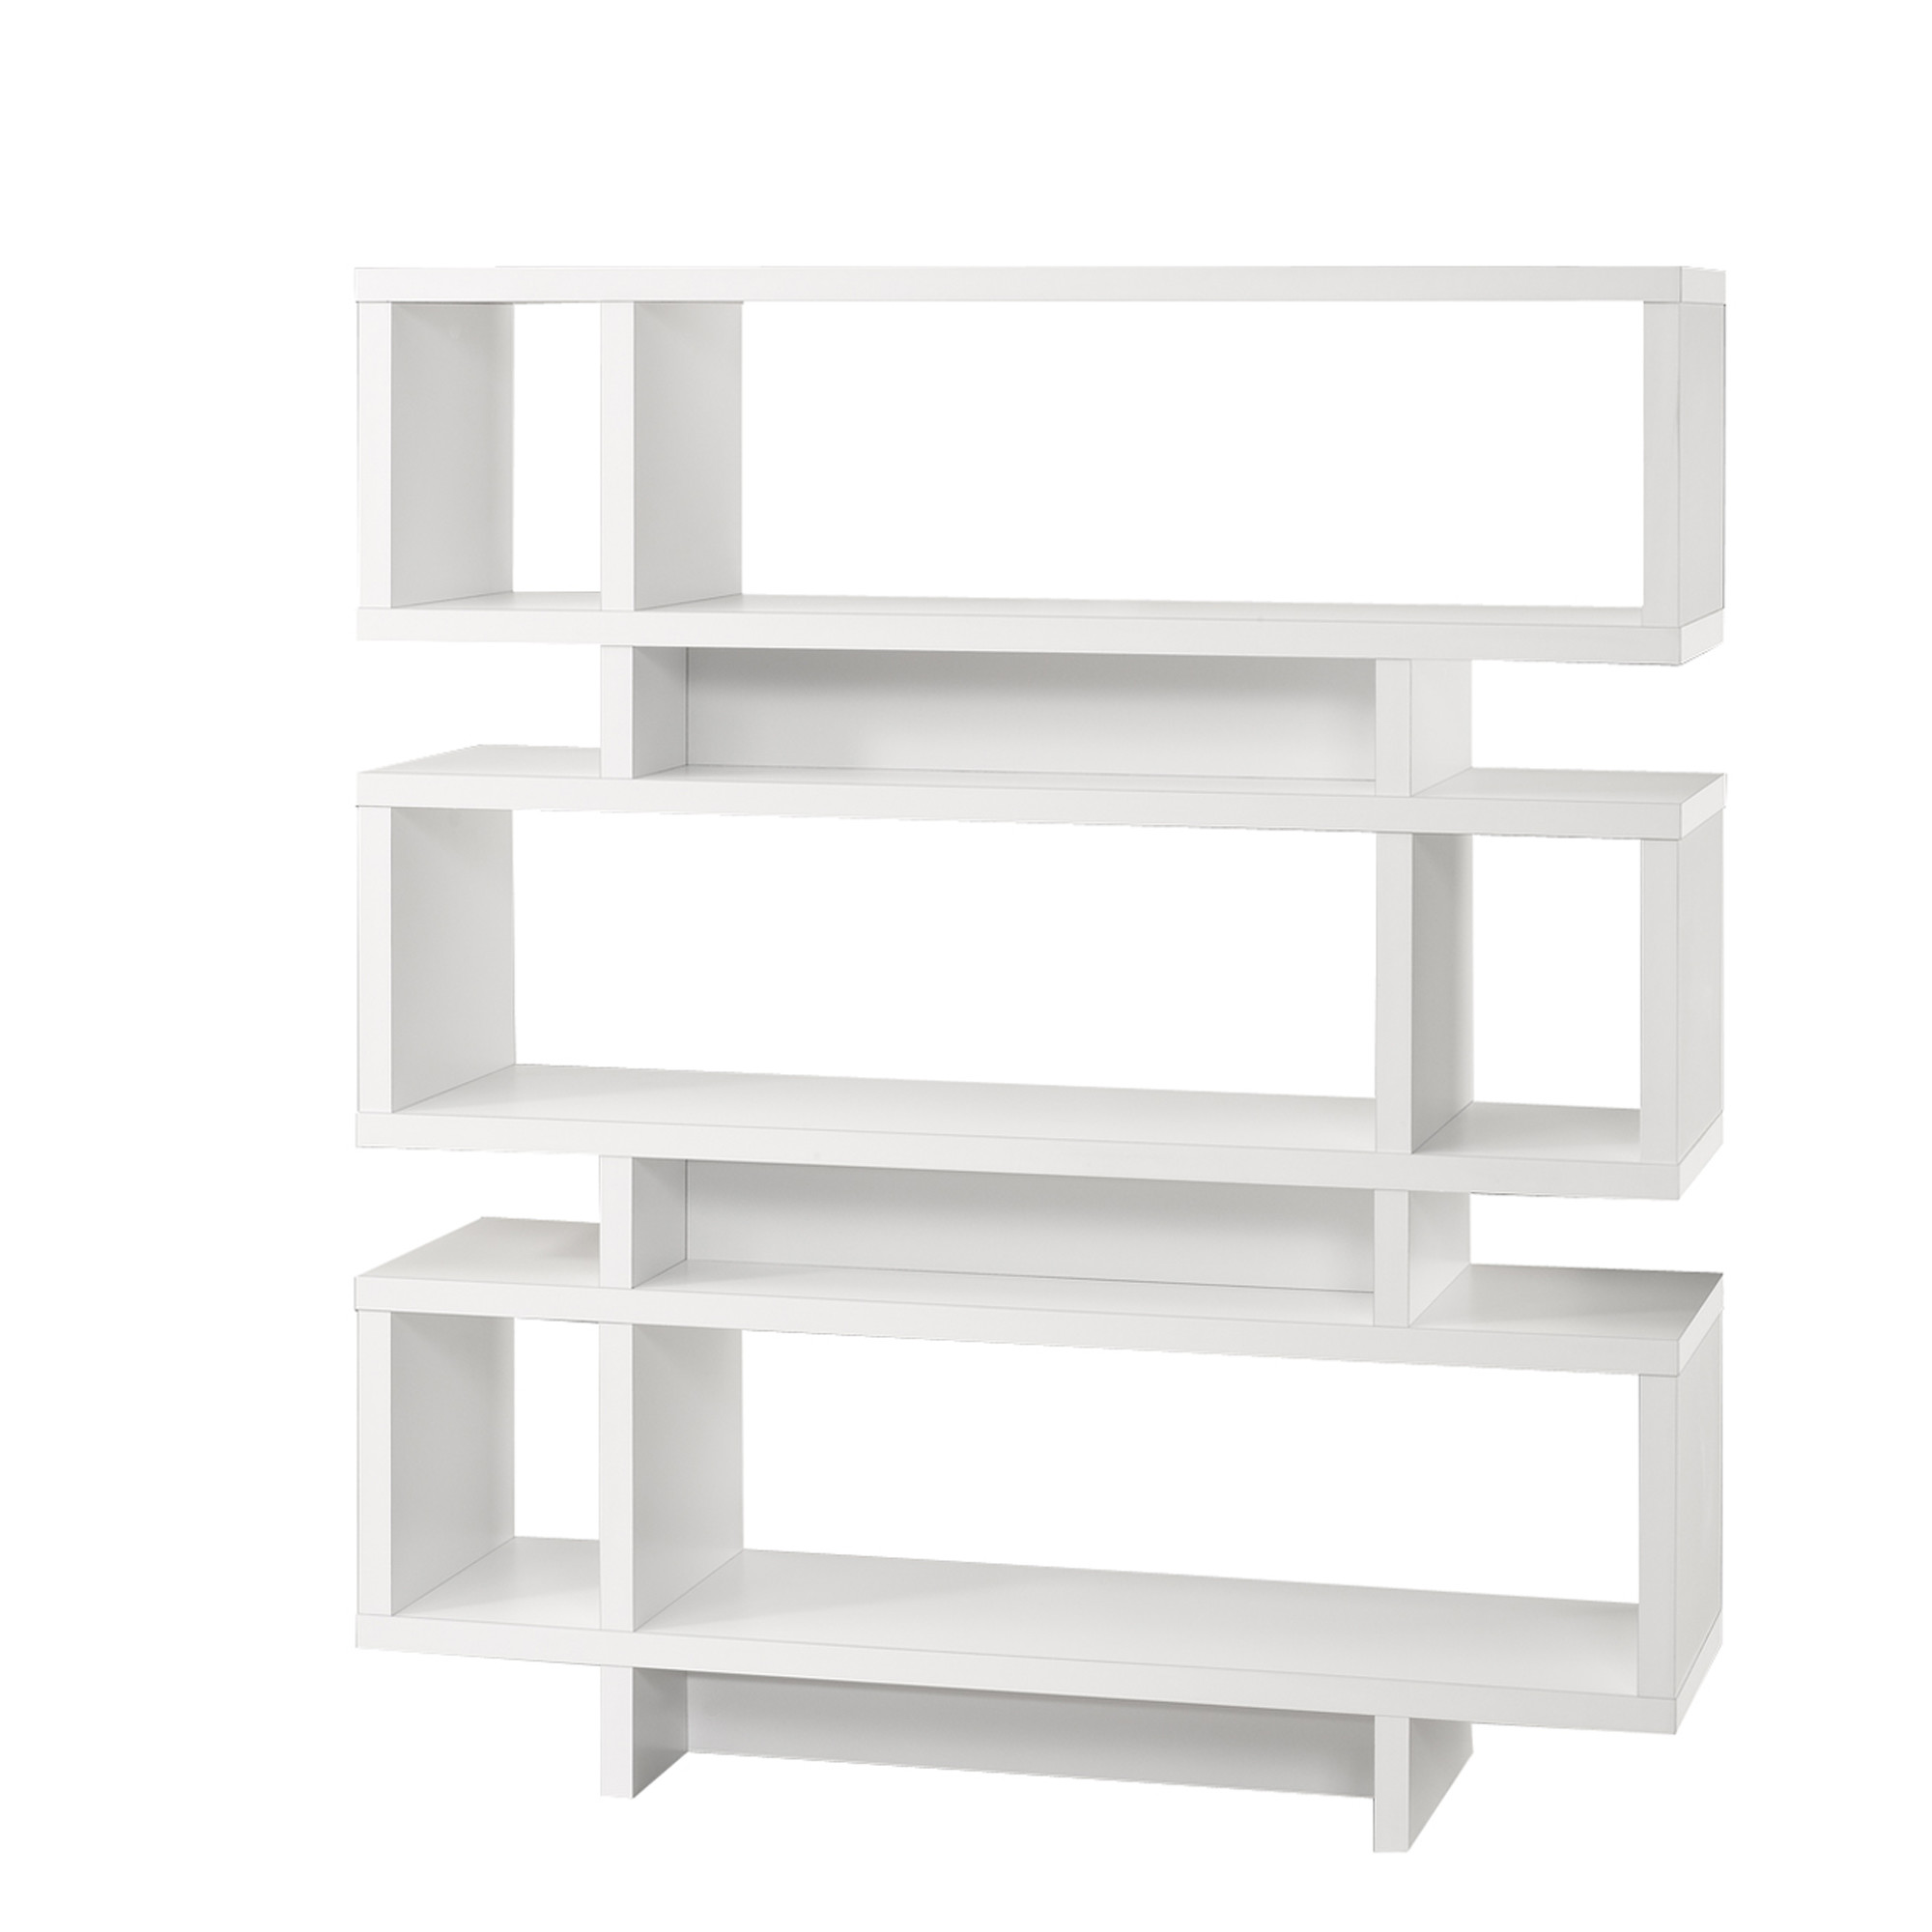 Details About Monarch Specialties I 2532 48 W Modern Open Back Bookcase White